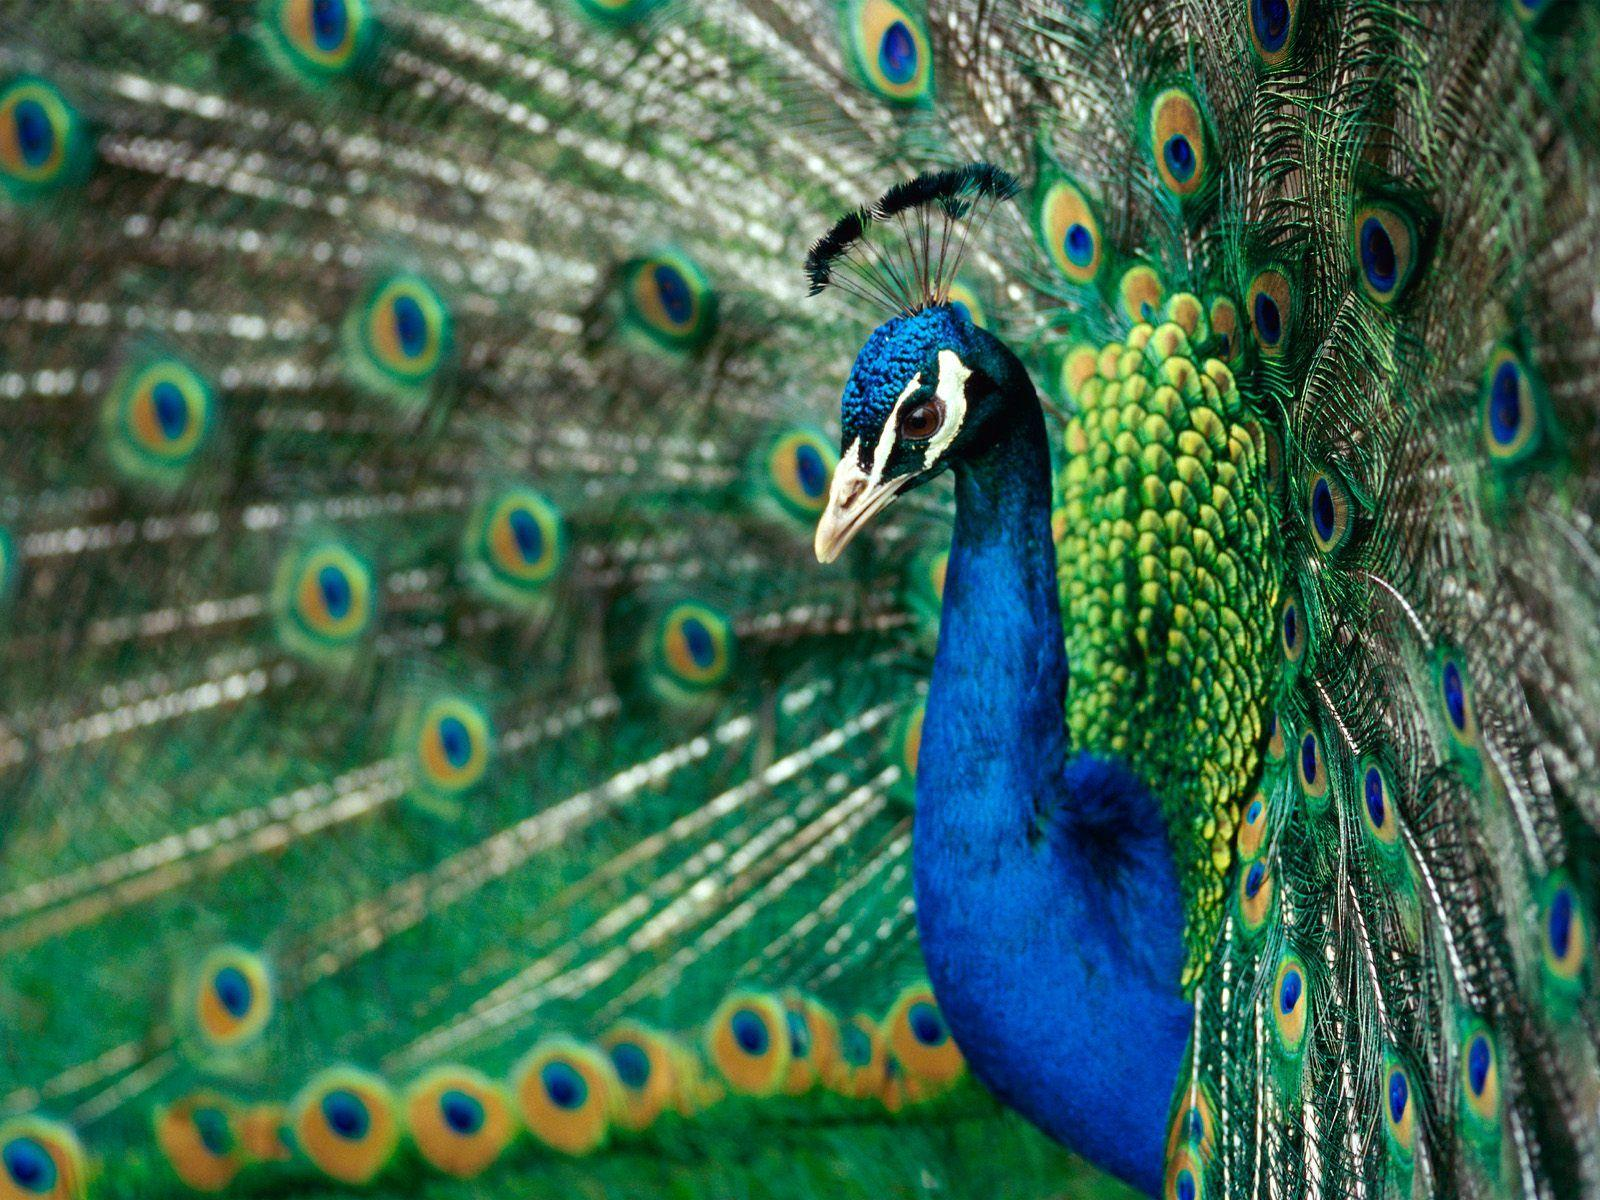 Cute peacock wallpaper - photo#9